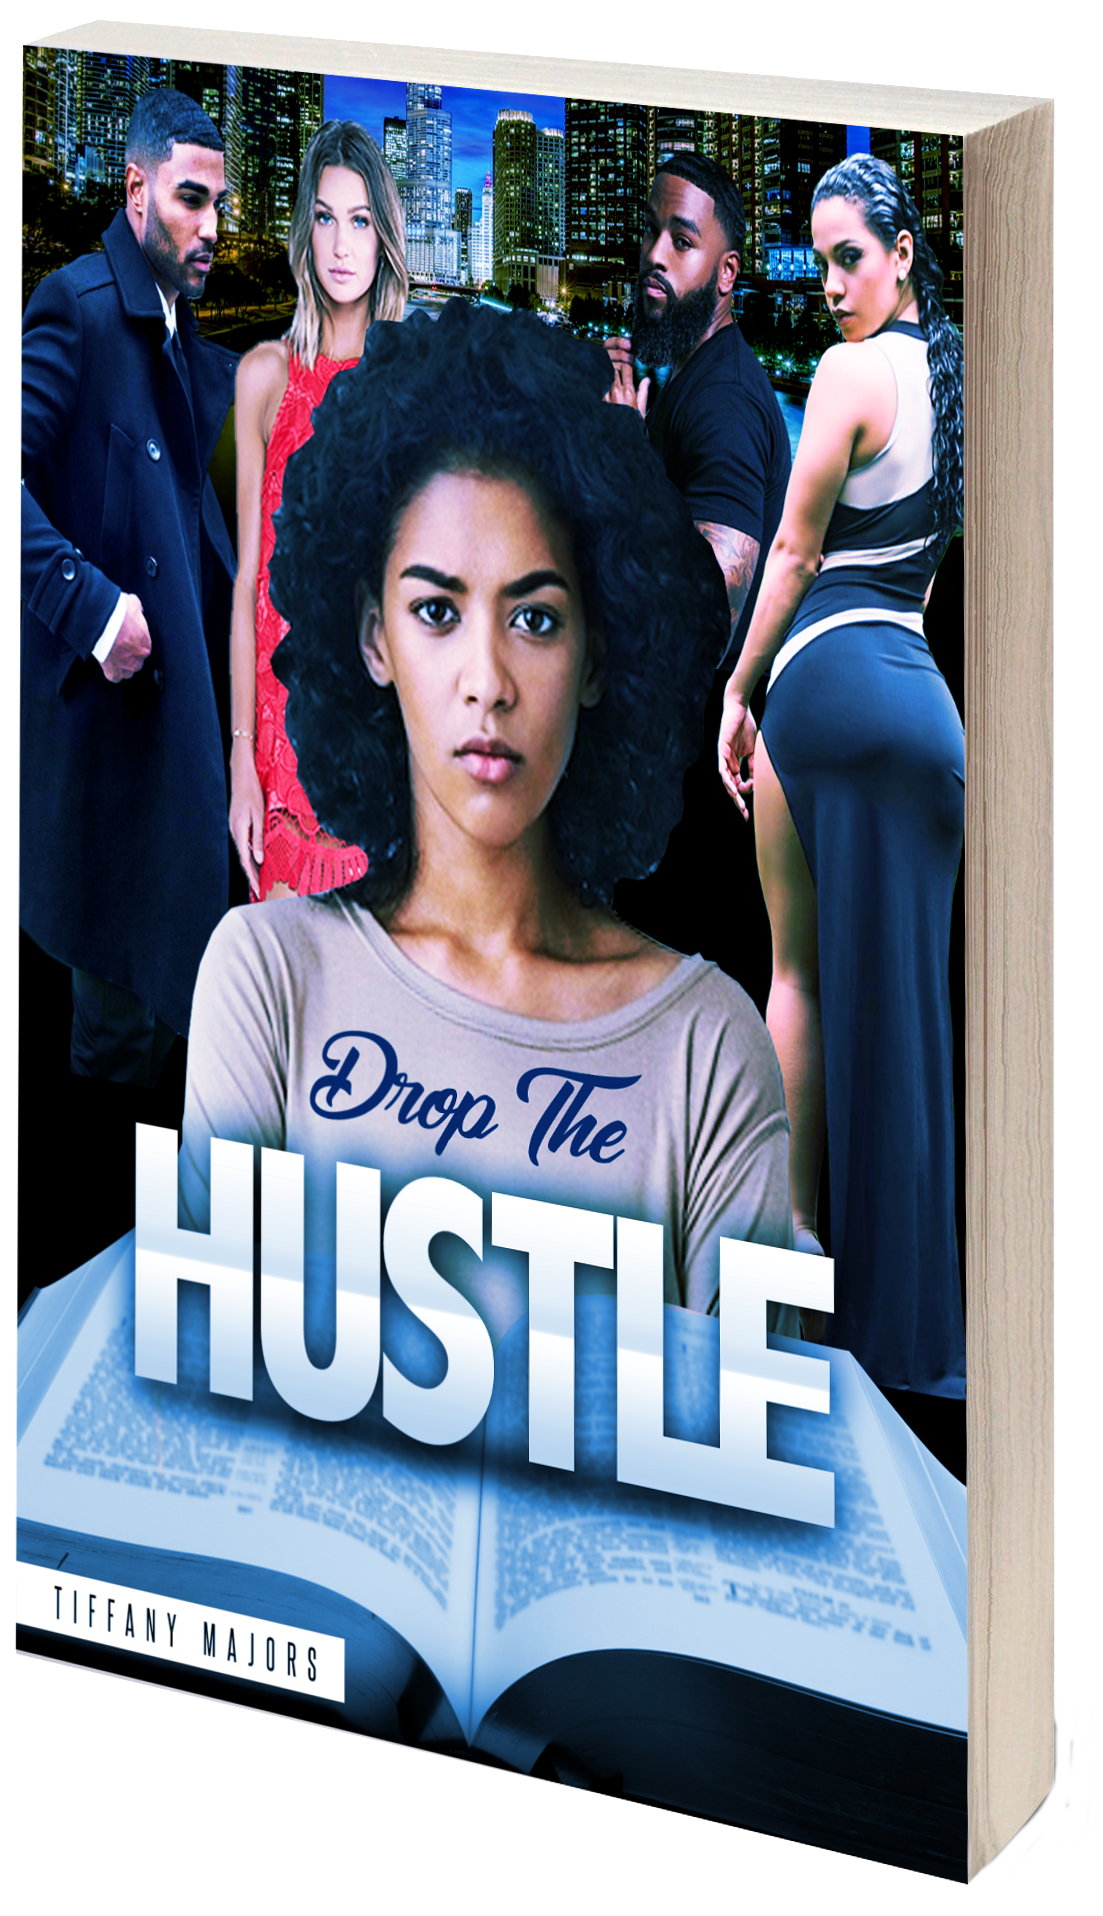 Drop The Hustle